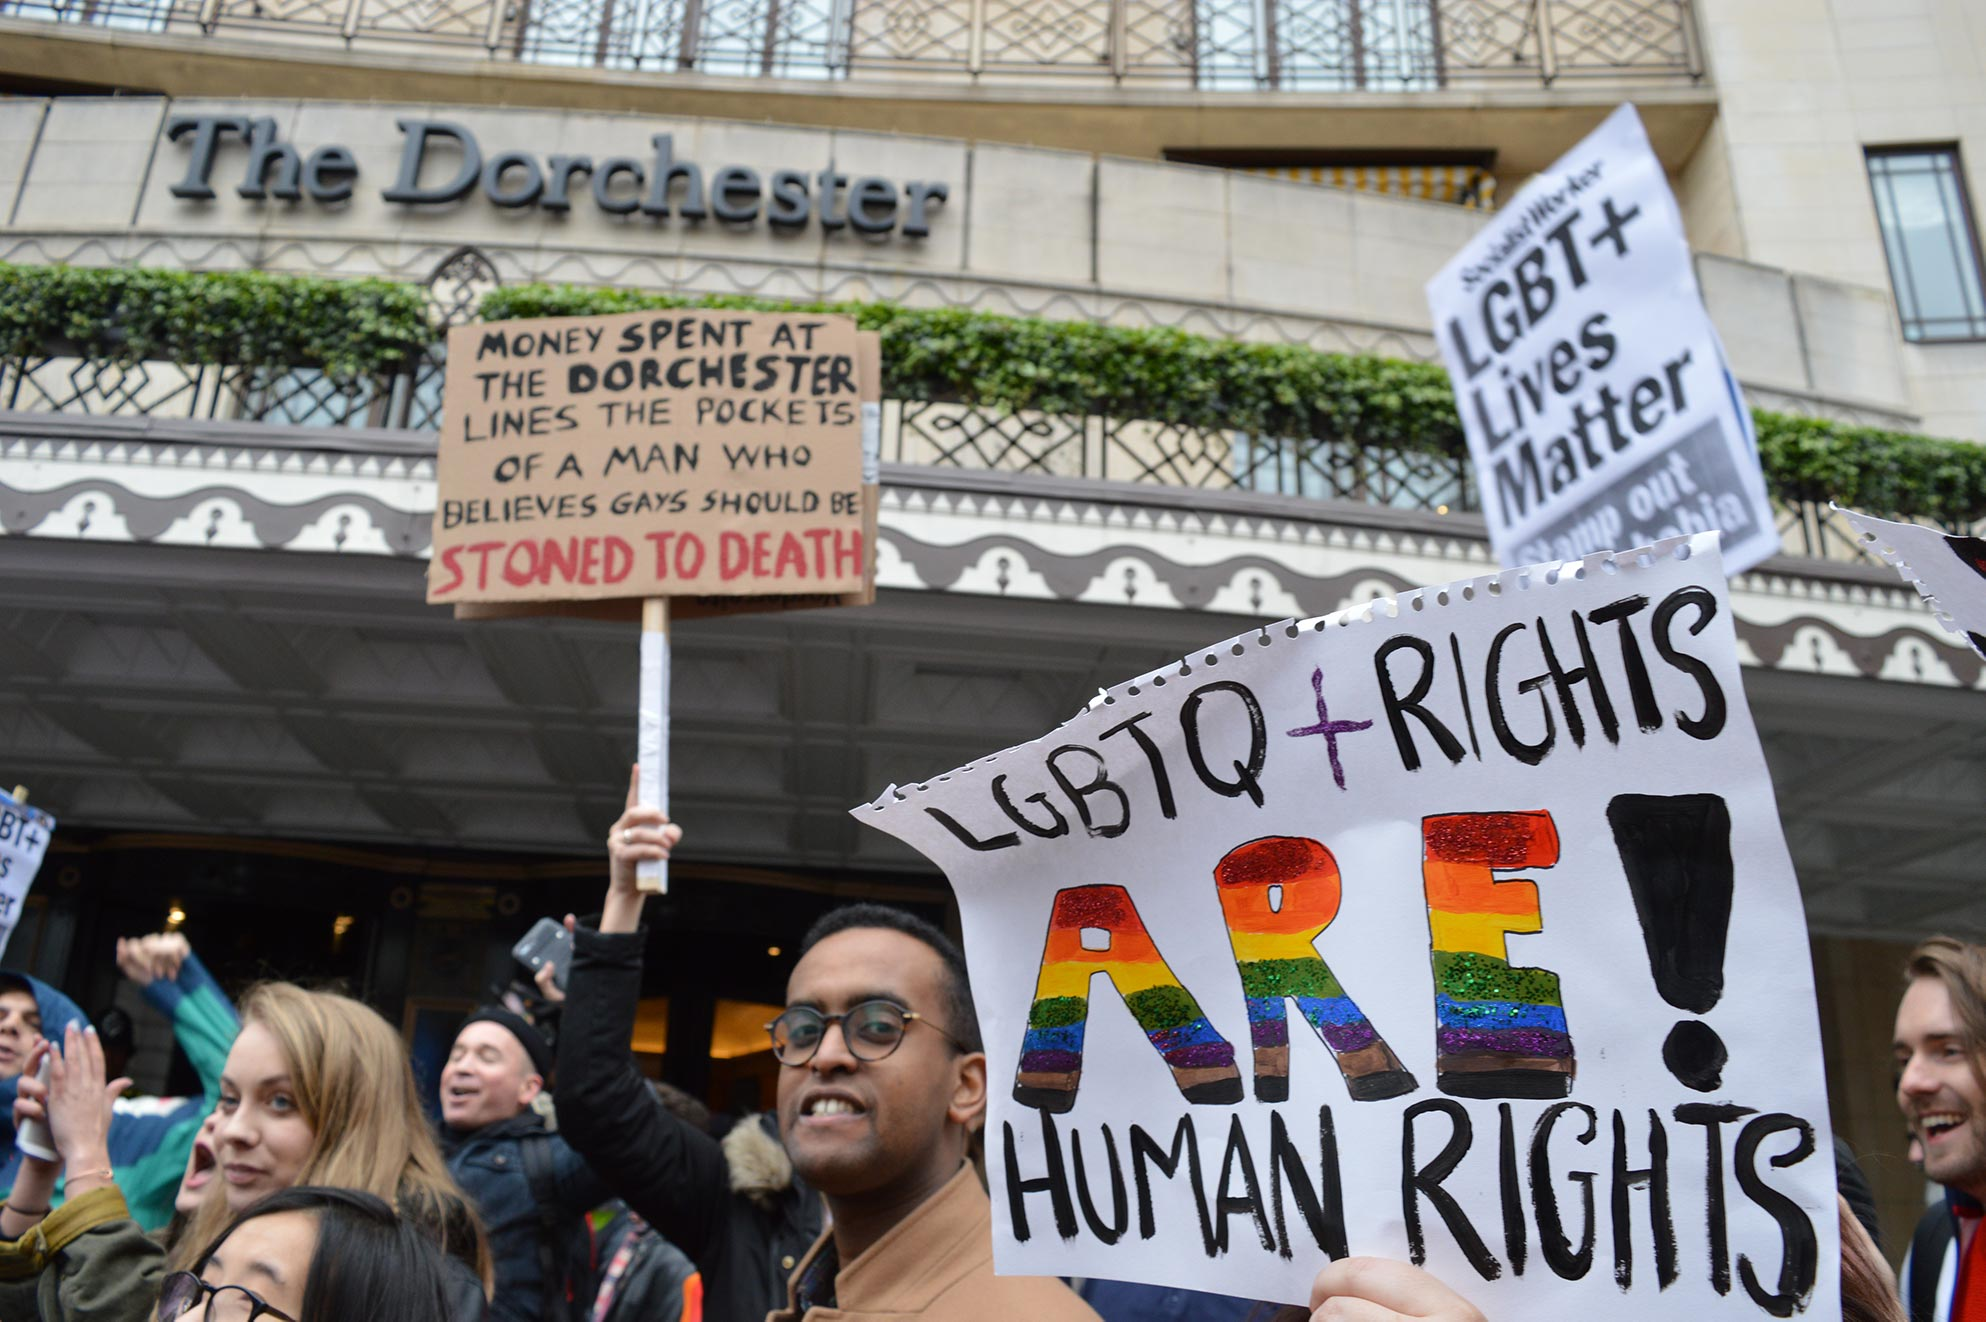 A protest outside of The Dorchester hotel in London